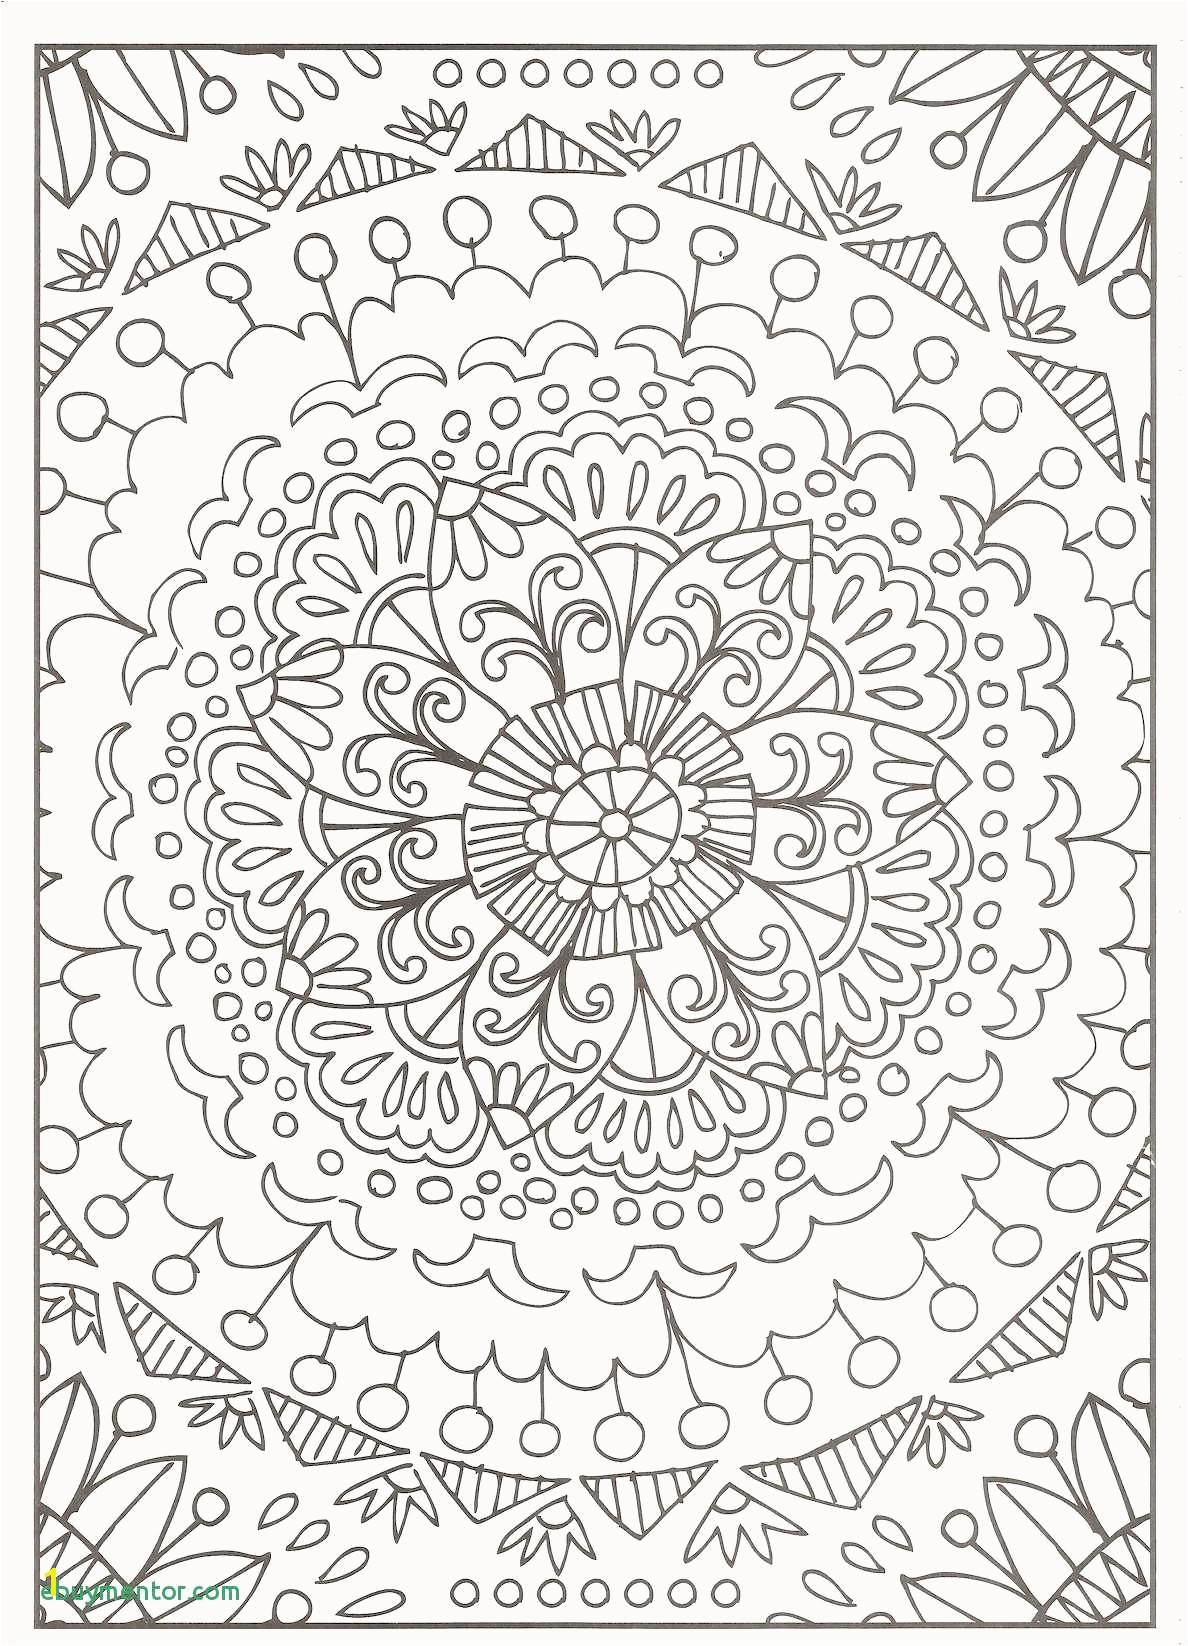 Coloring Pages Xylophone Lovely New Colering Beautiful Coloring Papers 0d Archives Se Telefonyfo Coloring